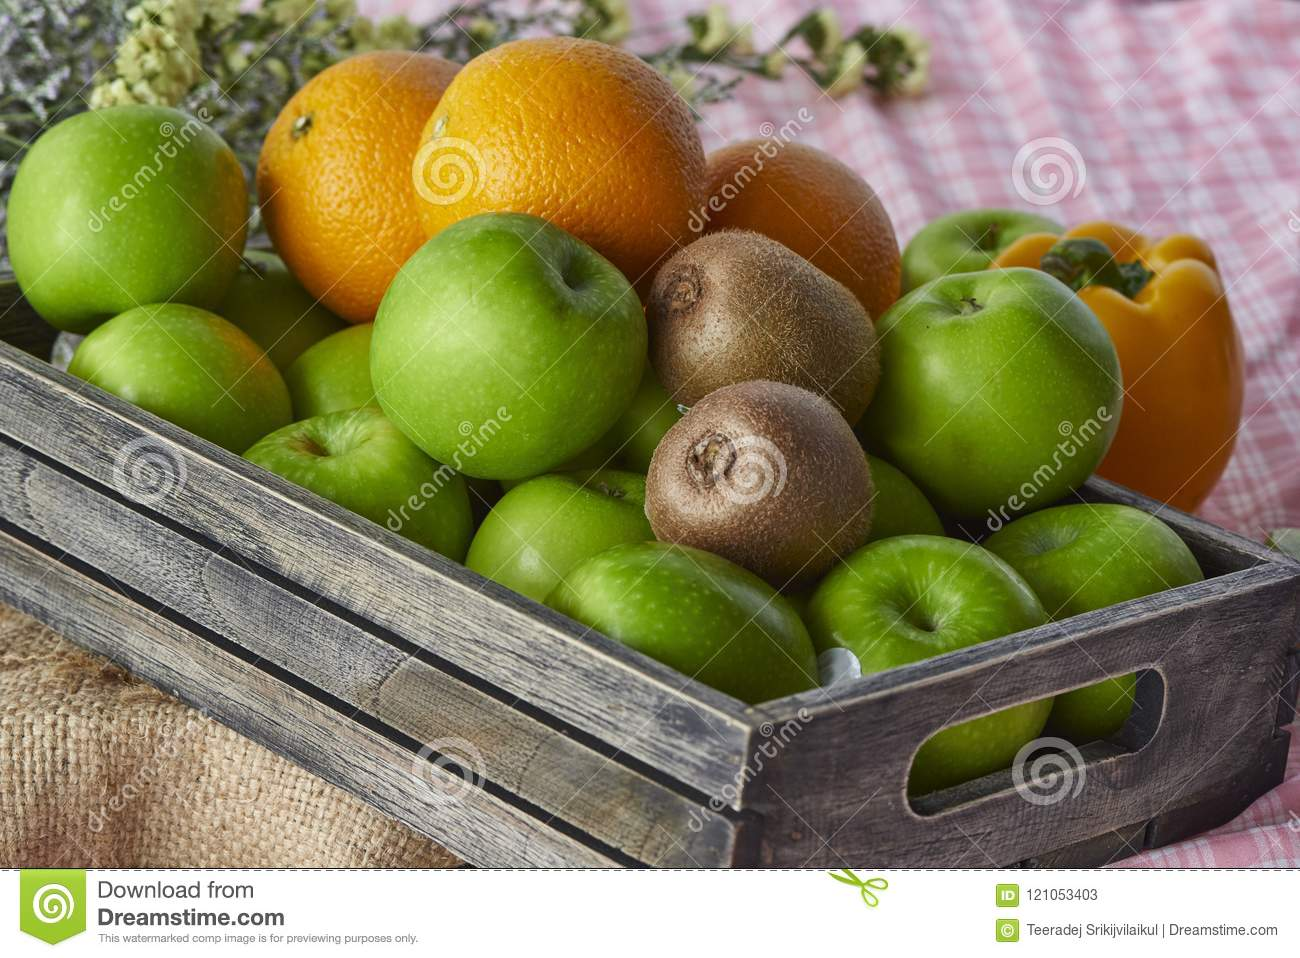 Oranges,kiwis and apples in a wooden crate